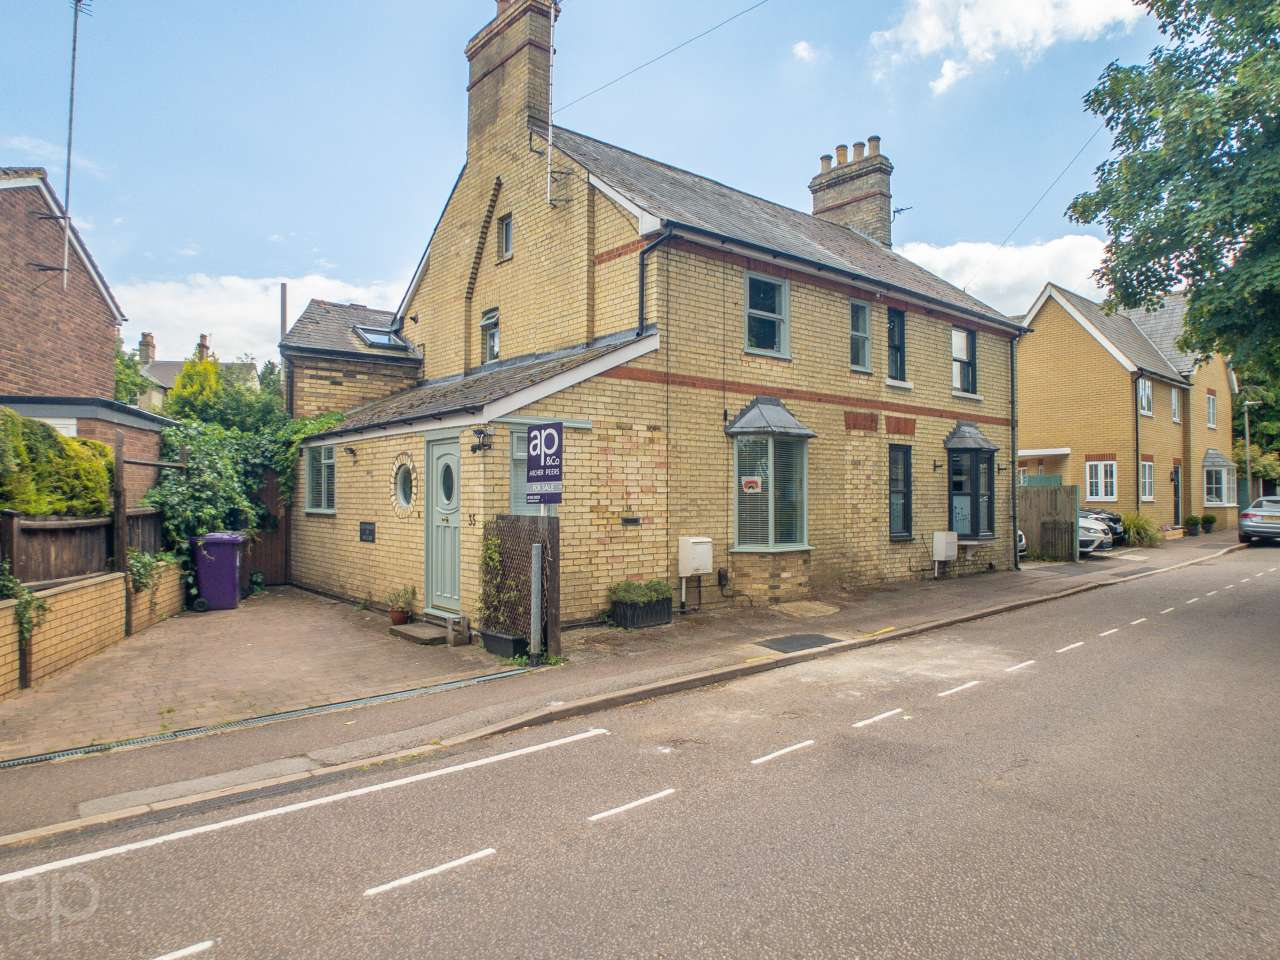 35 Mill Road, Royston, SG8 7AQ